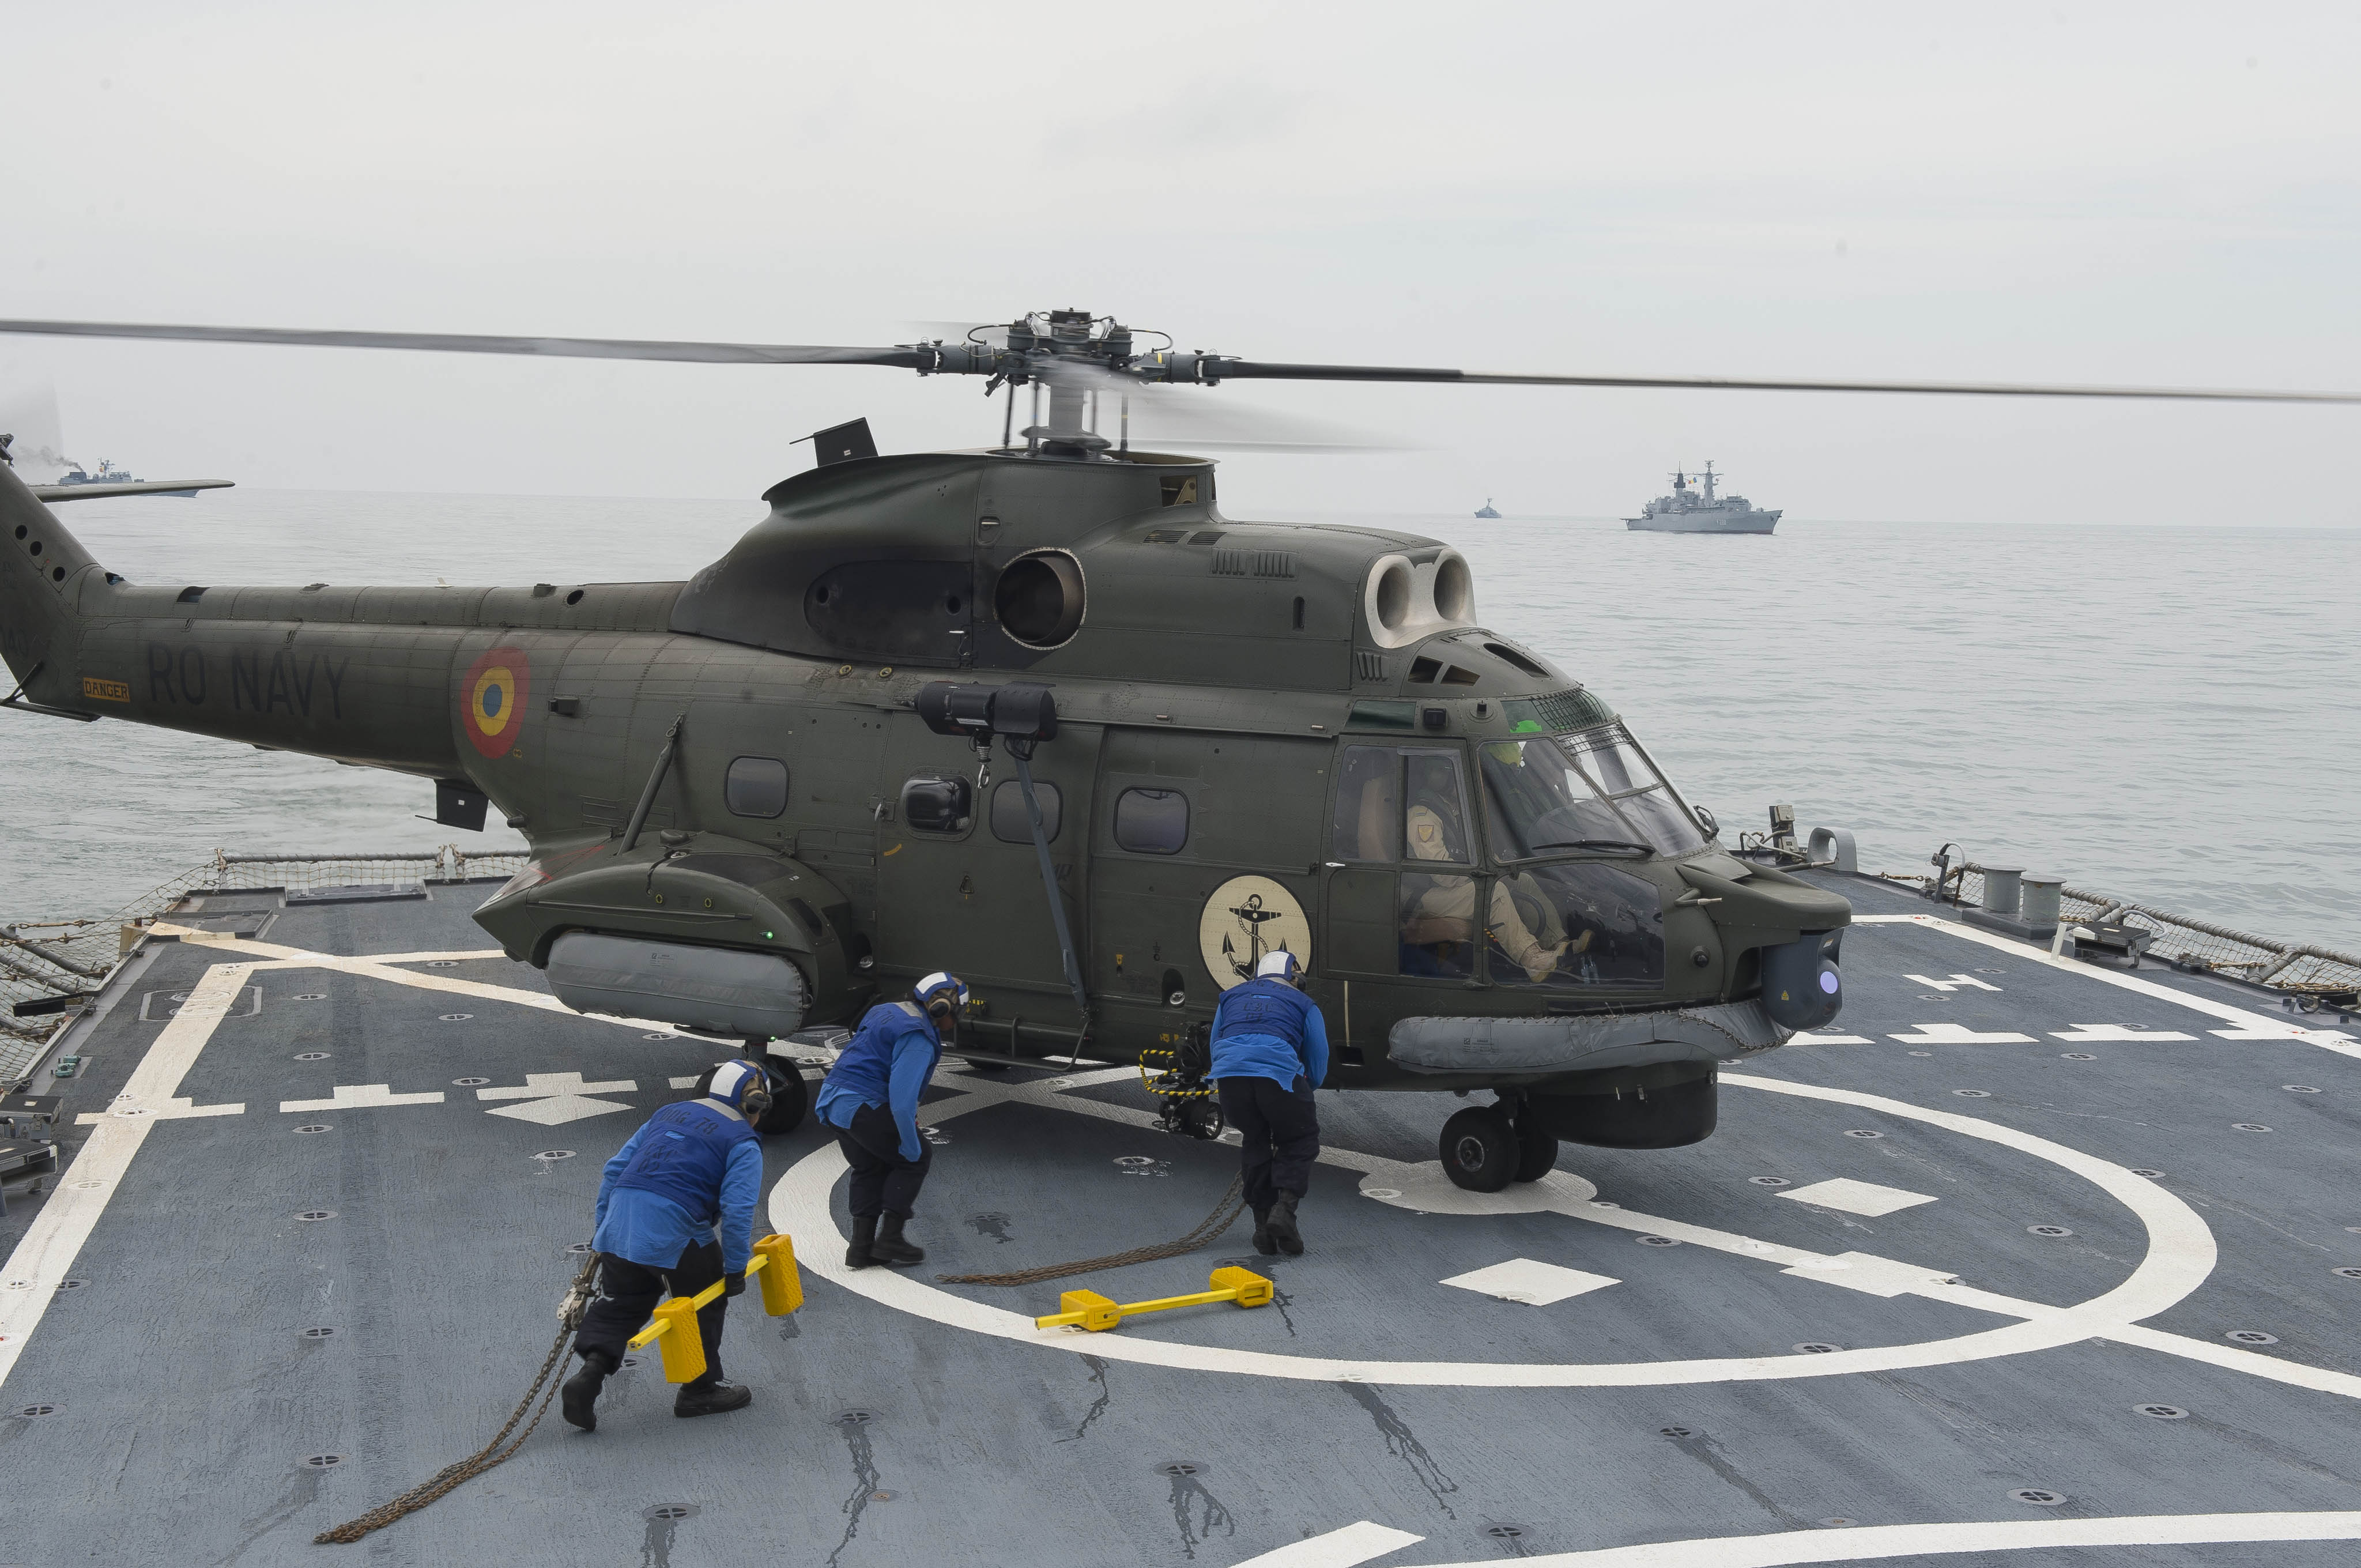 A Romanian navy IAR-330 medium helicopter lands aboard USS Porter (DDG 78) during a passing exercise in the Black Sea on June 13, 2016. Porter is forward-deployed to Rota, Spain for routine patrols in the U.S. 6th Fleet area of operations. US Navy photo.